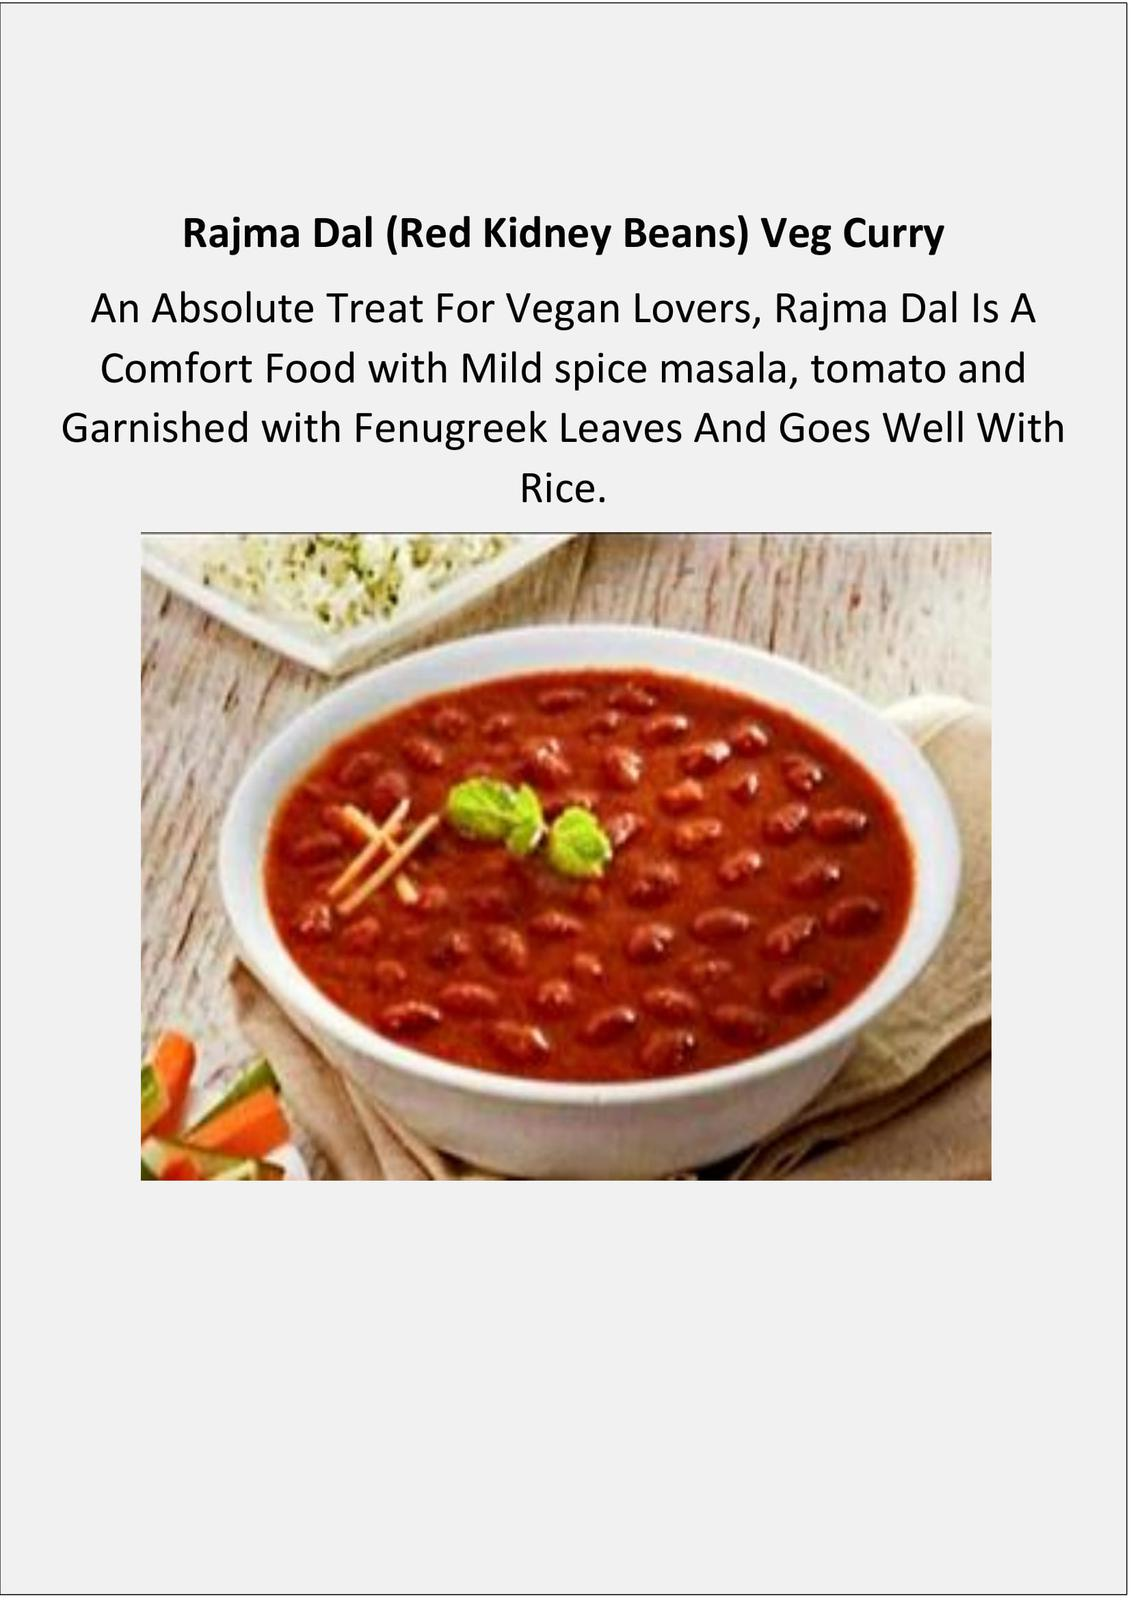 Rajma Dal (Red Kidney Beans) Veg Curry